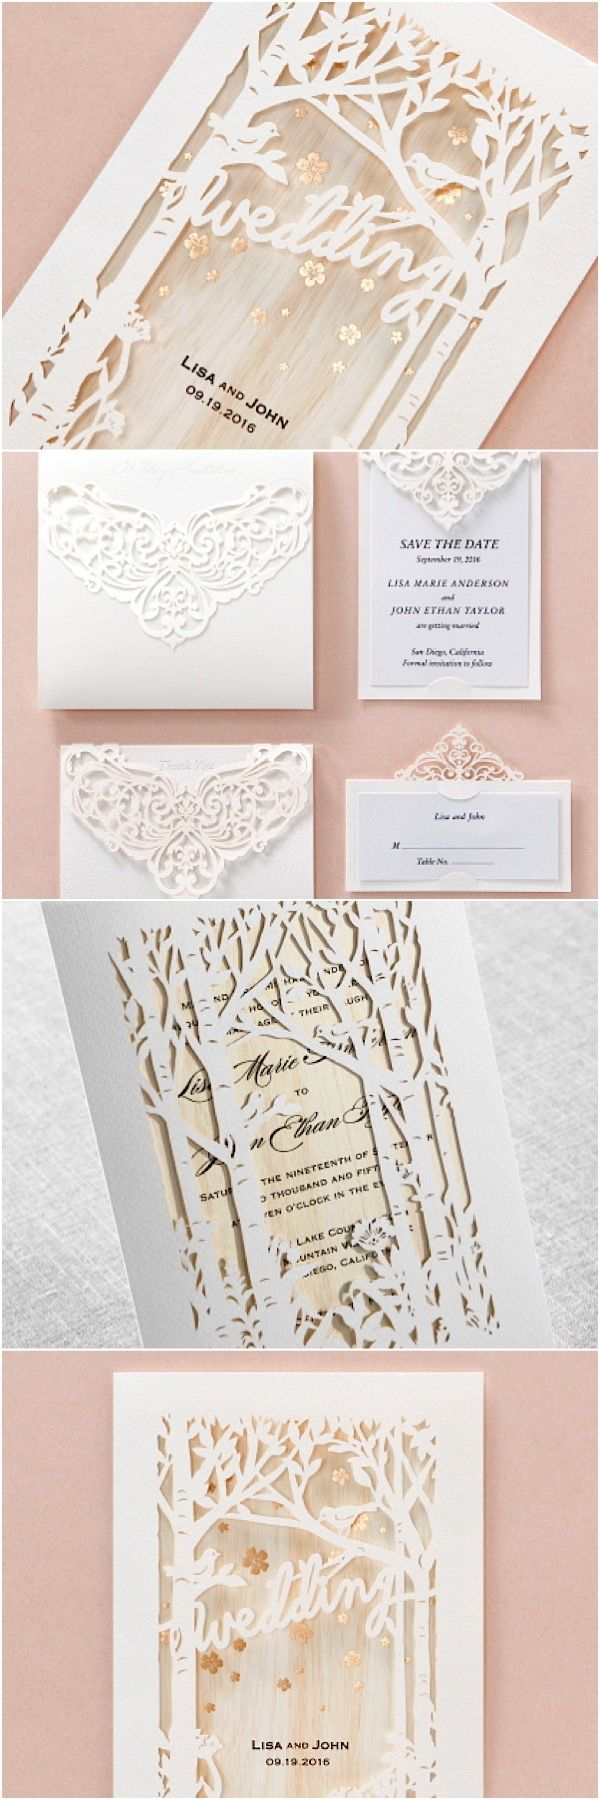 40 best wedding cards images on pinterest card wedding invitation